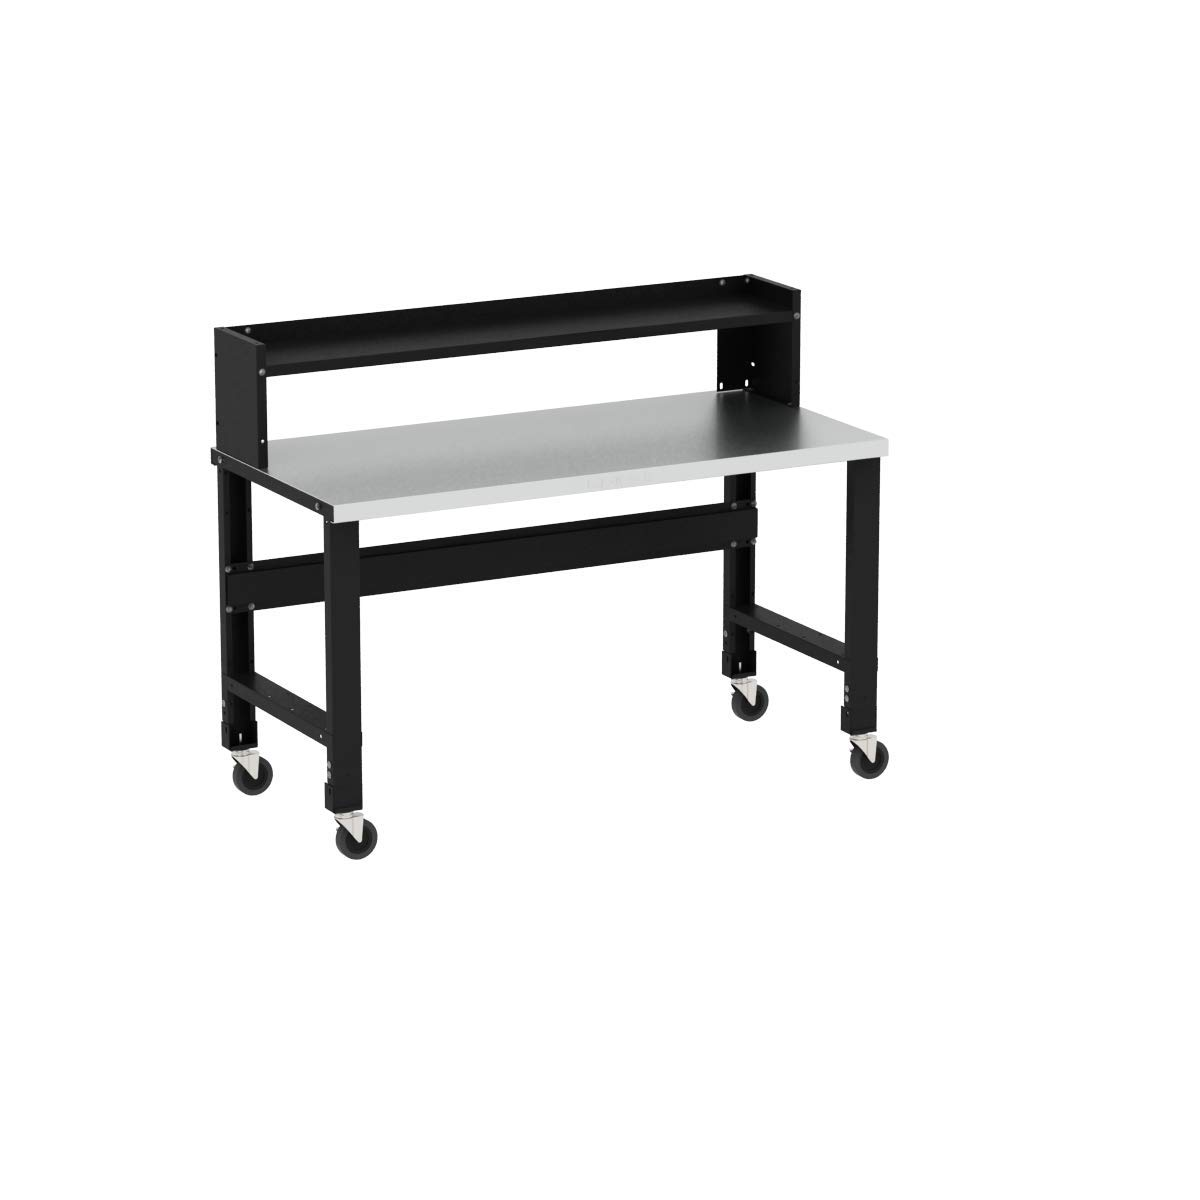 Borroughs Adjustable Height Stainless Steel Top Workbench with Ledge Shelf, 28 in x 60 in